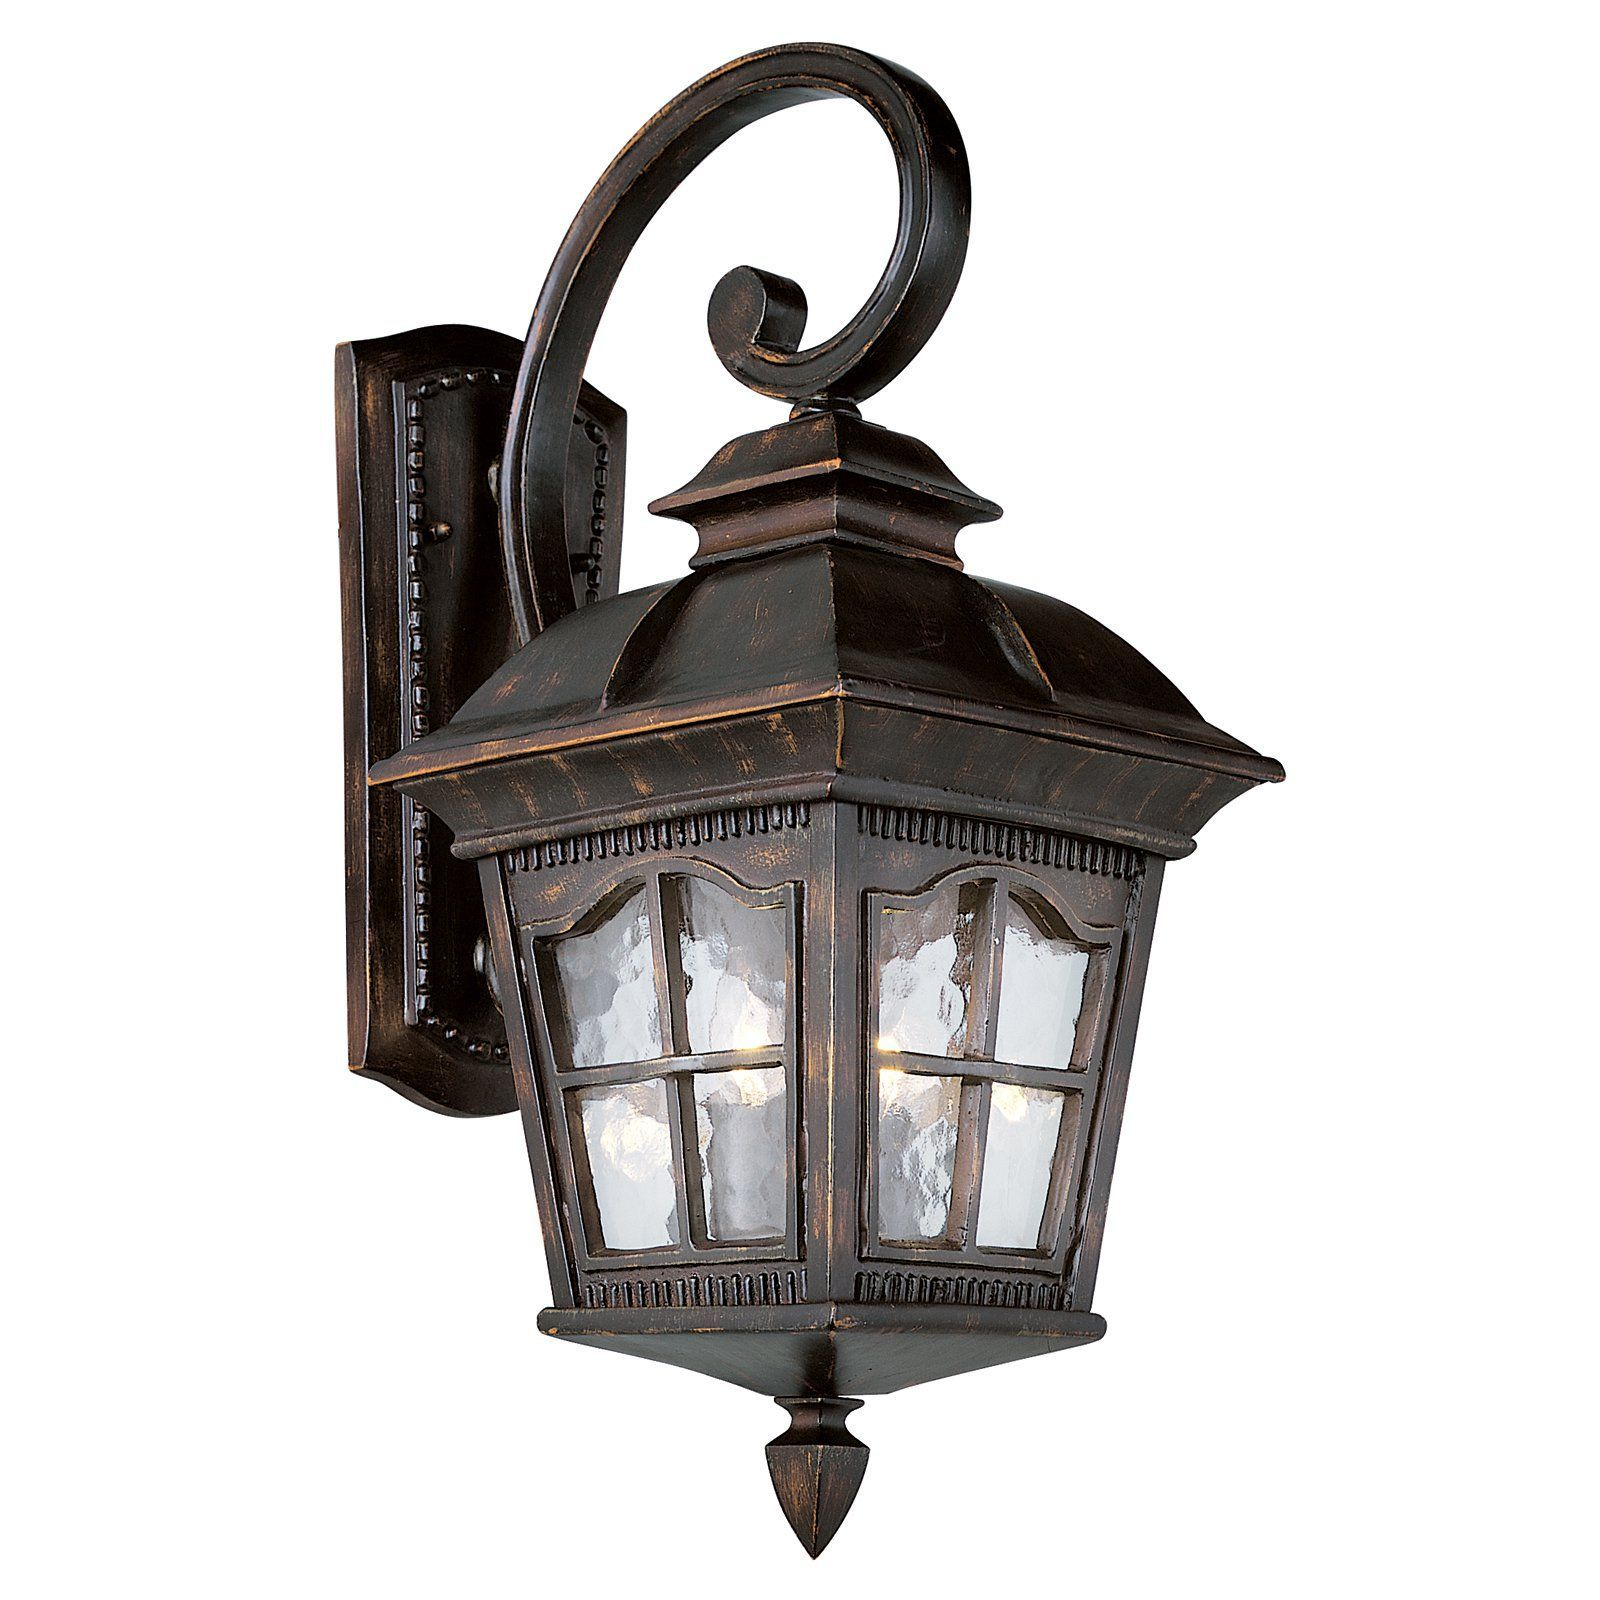 Bel air ellston outdoor wall light h in bk products